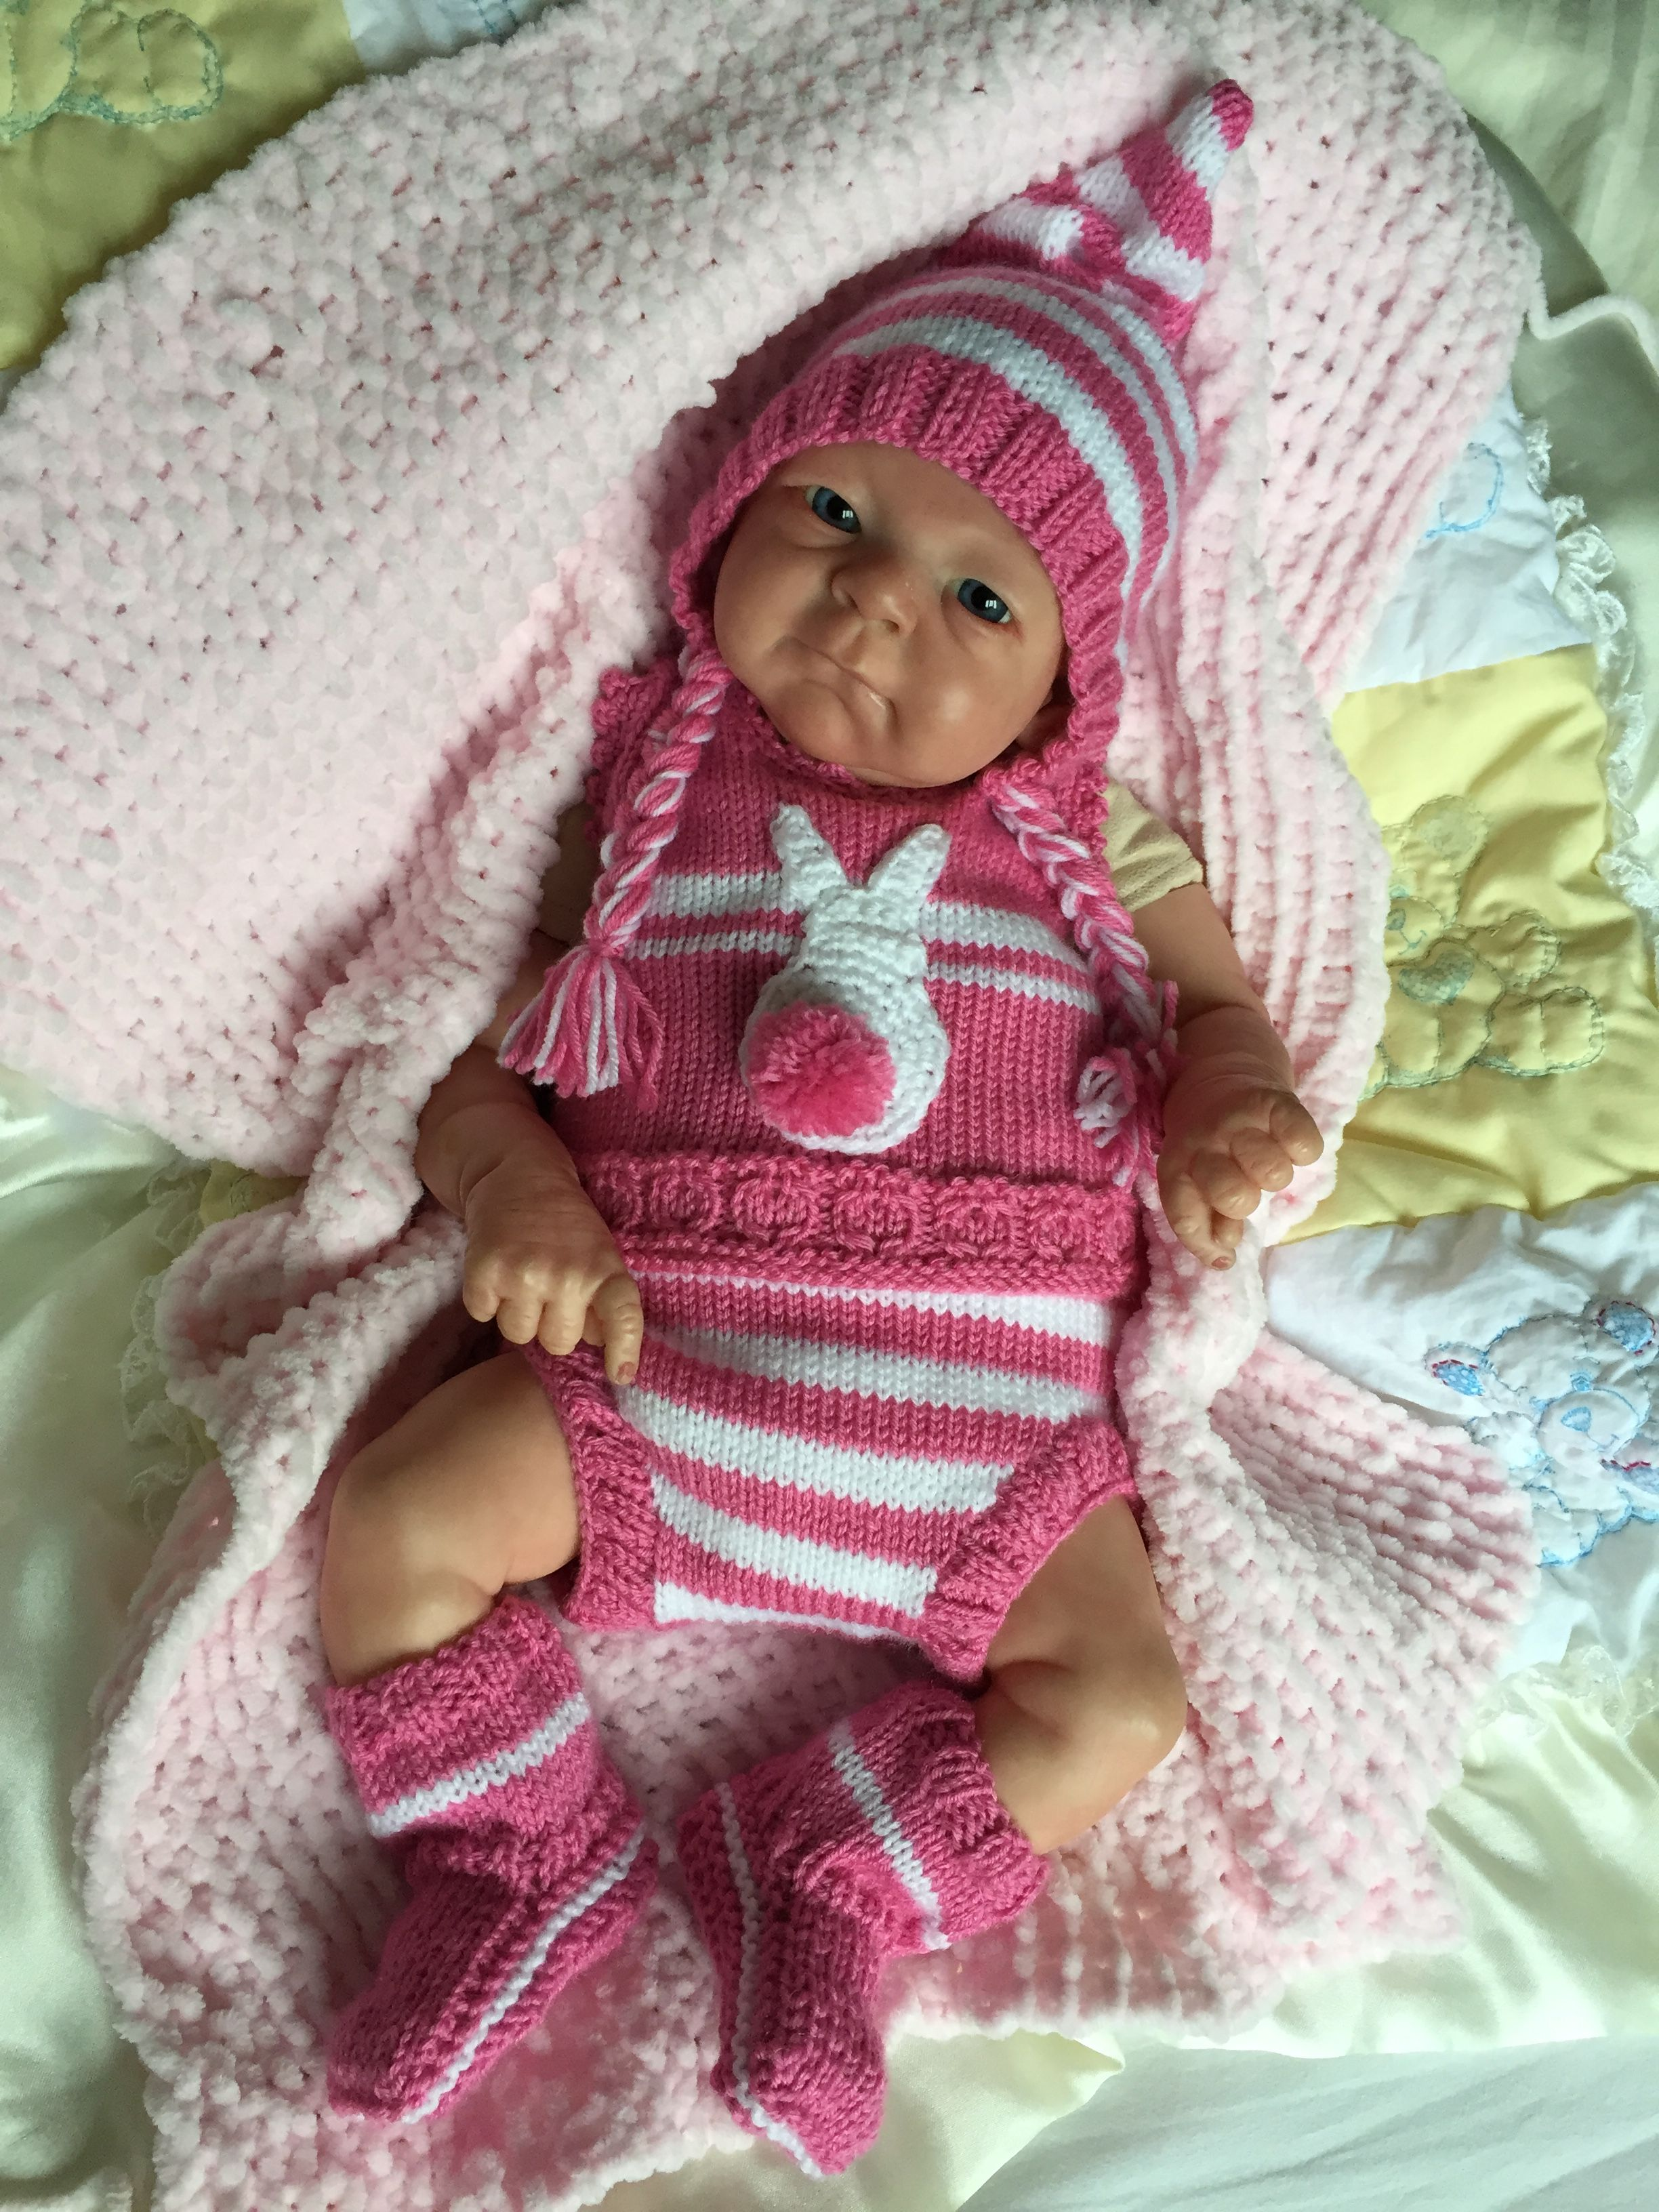 Knitting pattern available here http://www.piccolissimobaby.co.uk ...